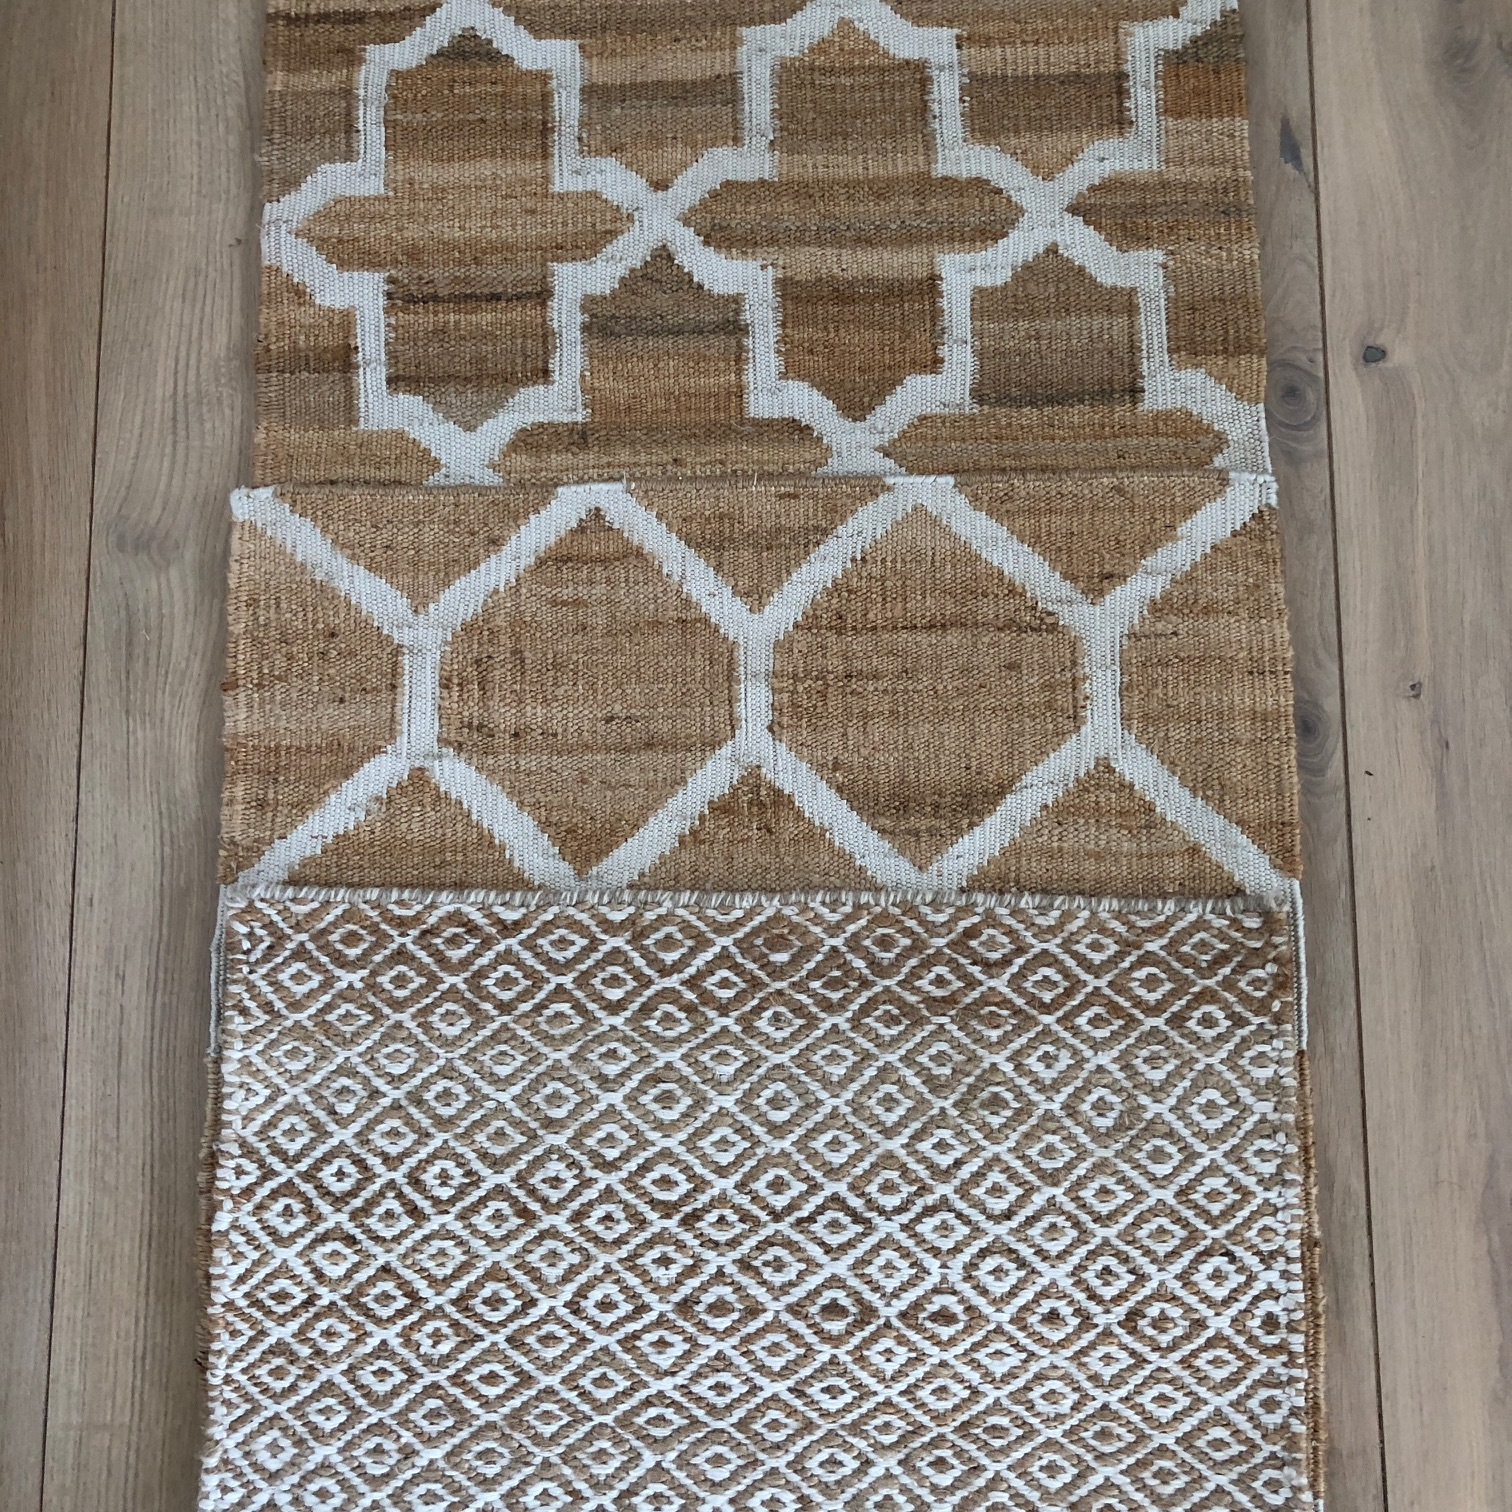 gable, honeycomb and small didamonds in jute.JPG